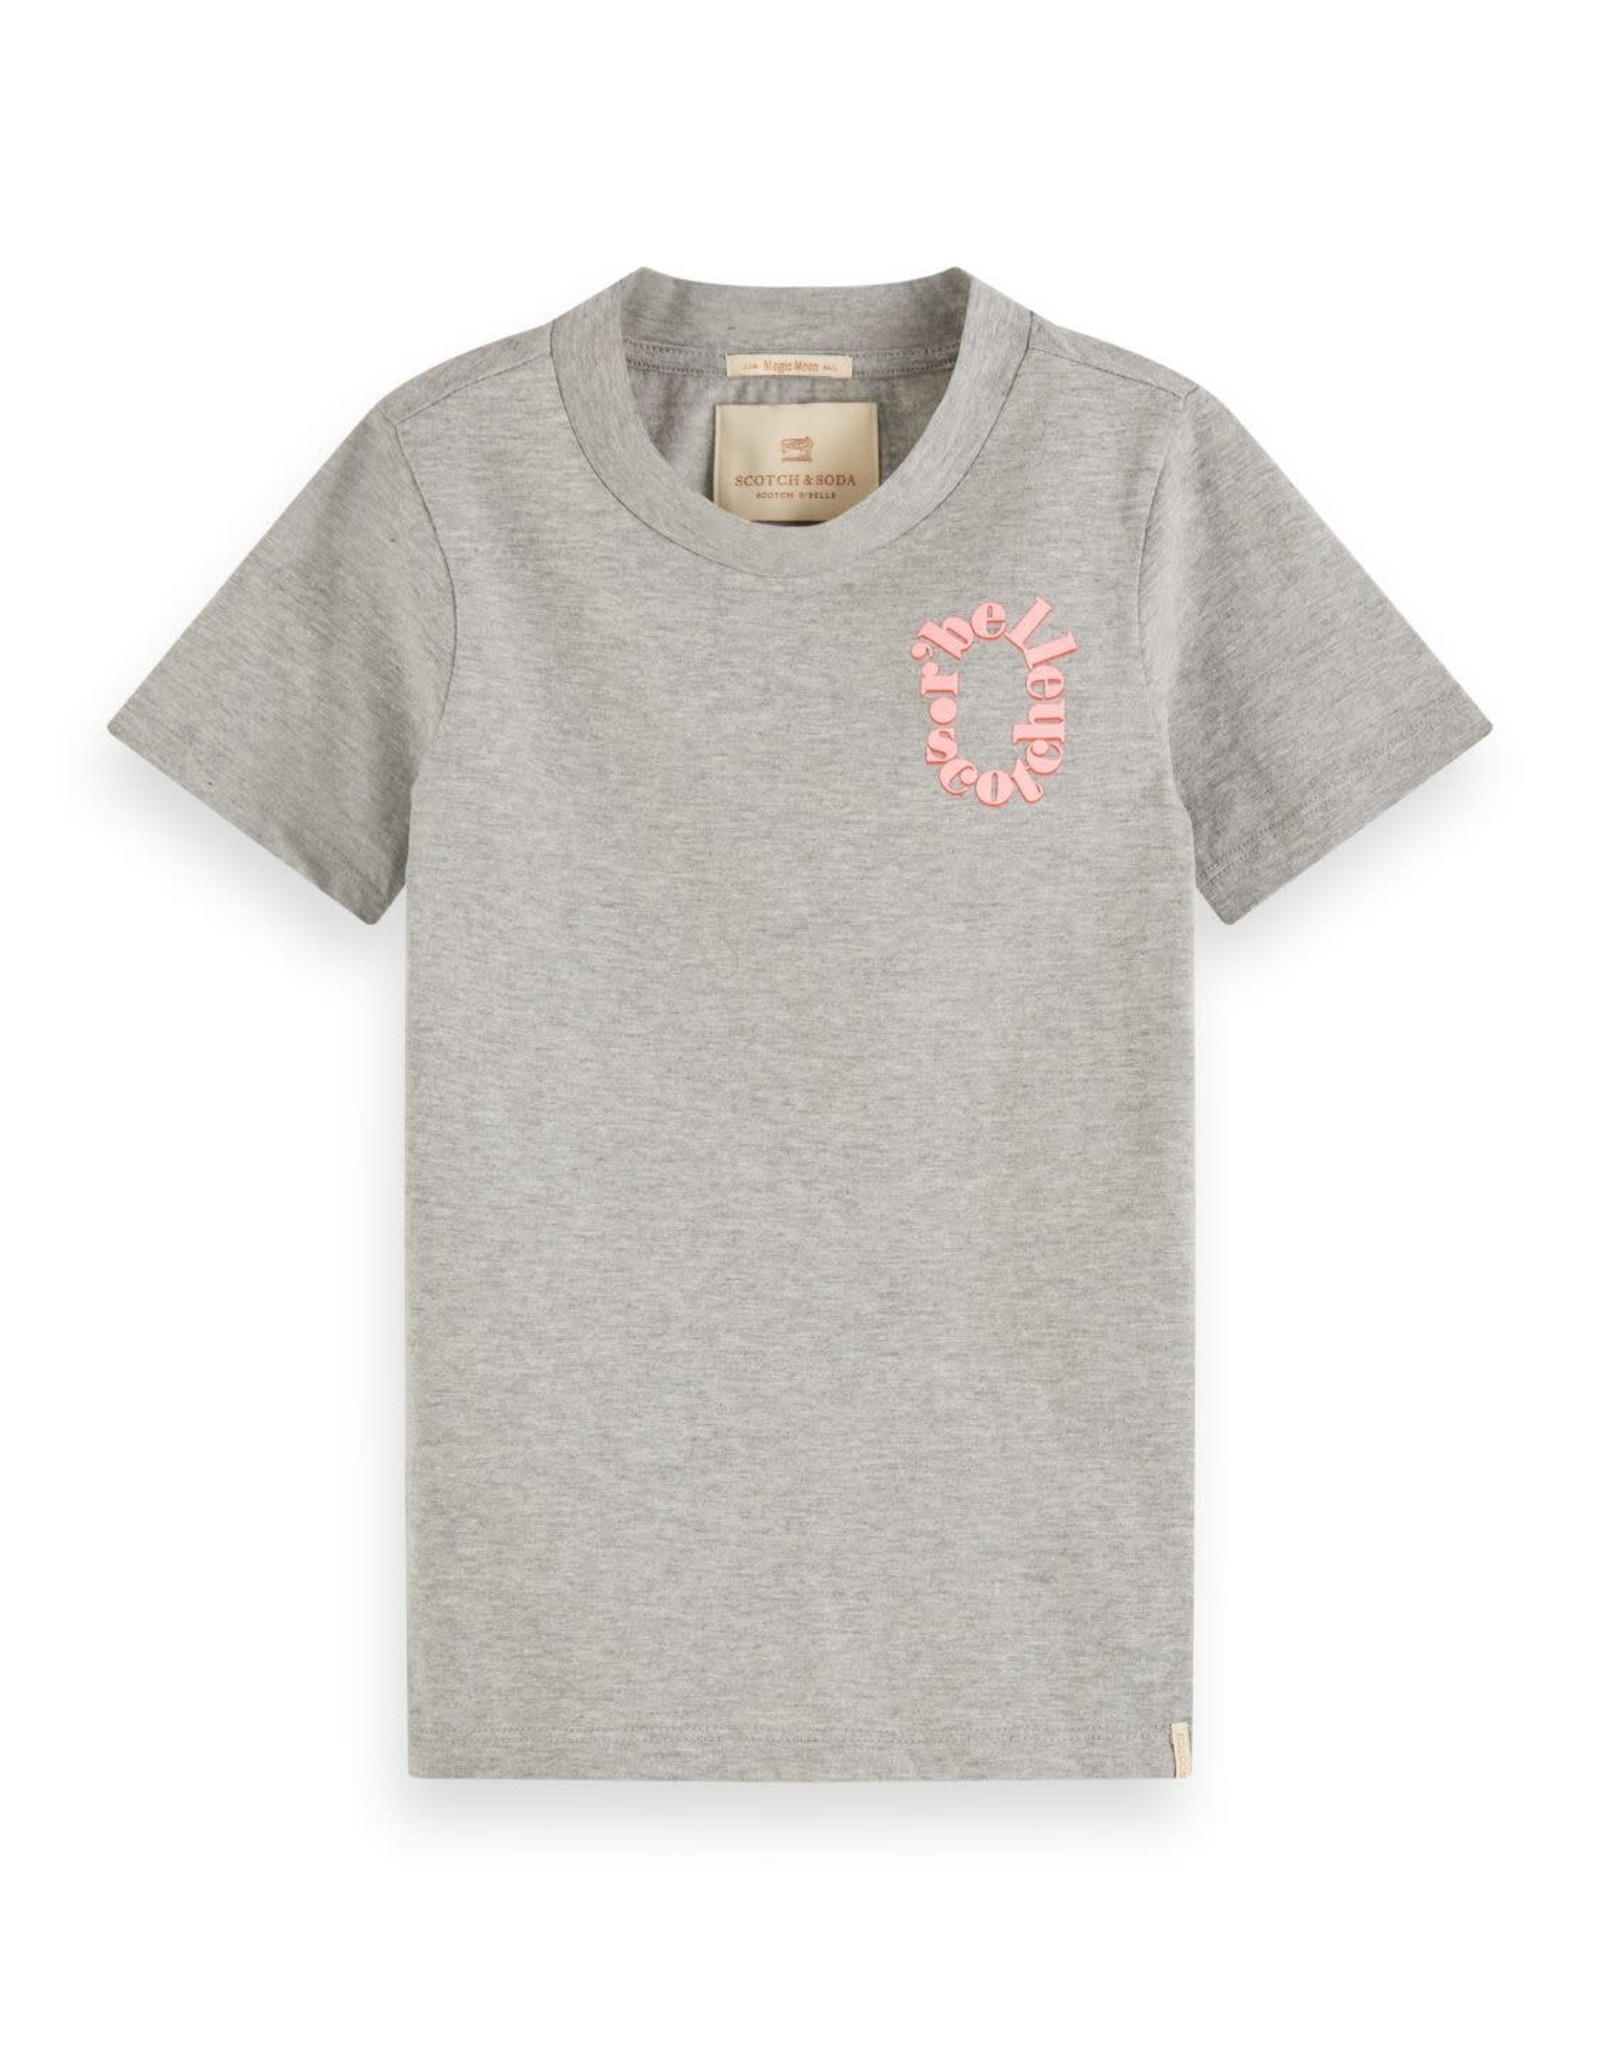 SCOTCH REBELLE Organic cotton tee with small chest artwork 0606-Grey Melange